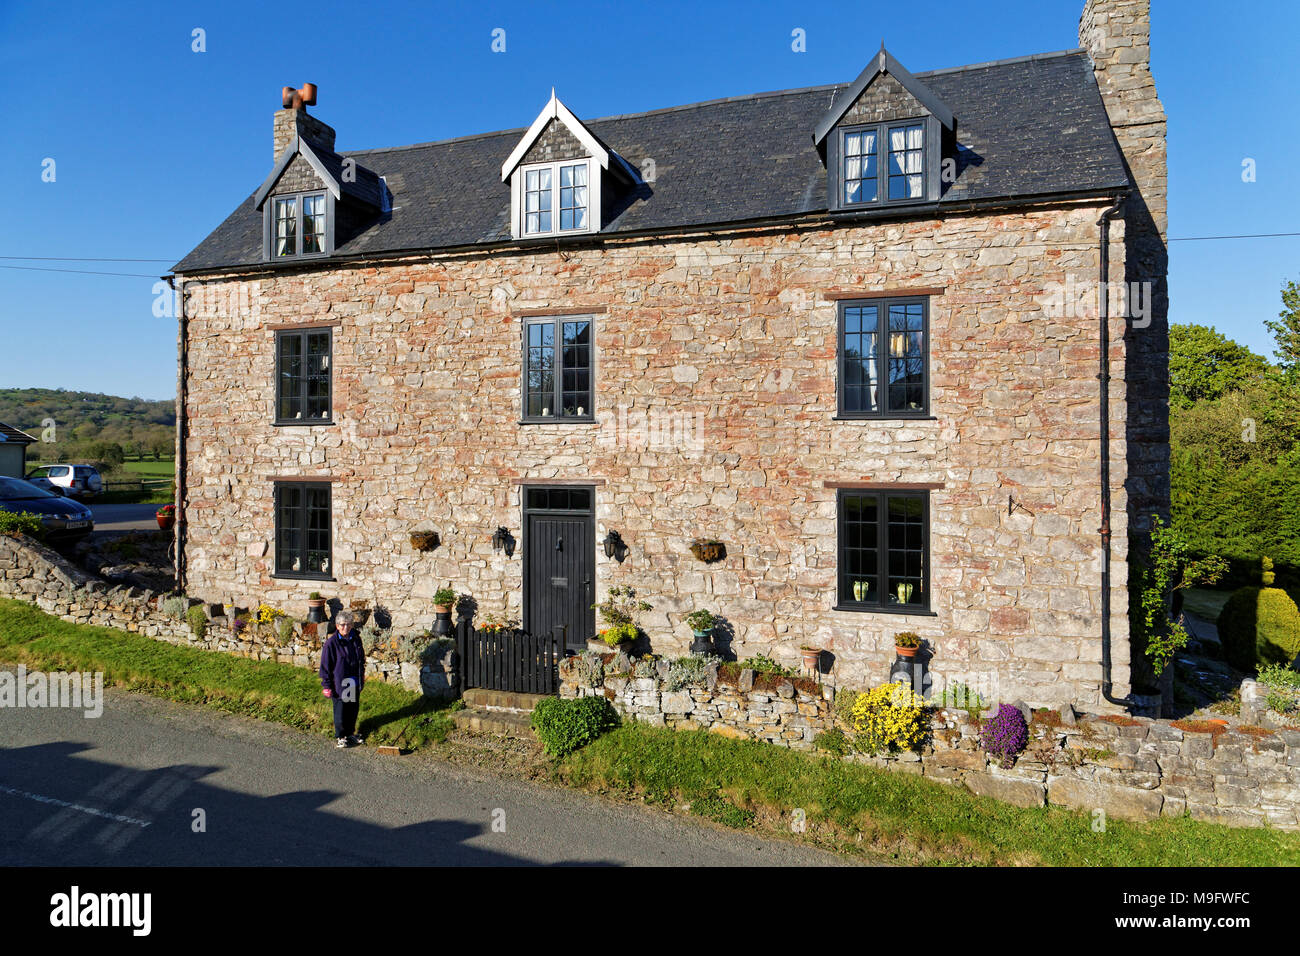 42,506.01574 longtime married woman living in a 3-story 500 yr old stone house, that was once a pub tavern - Stock Image